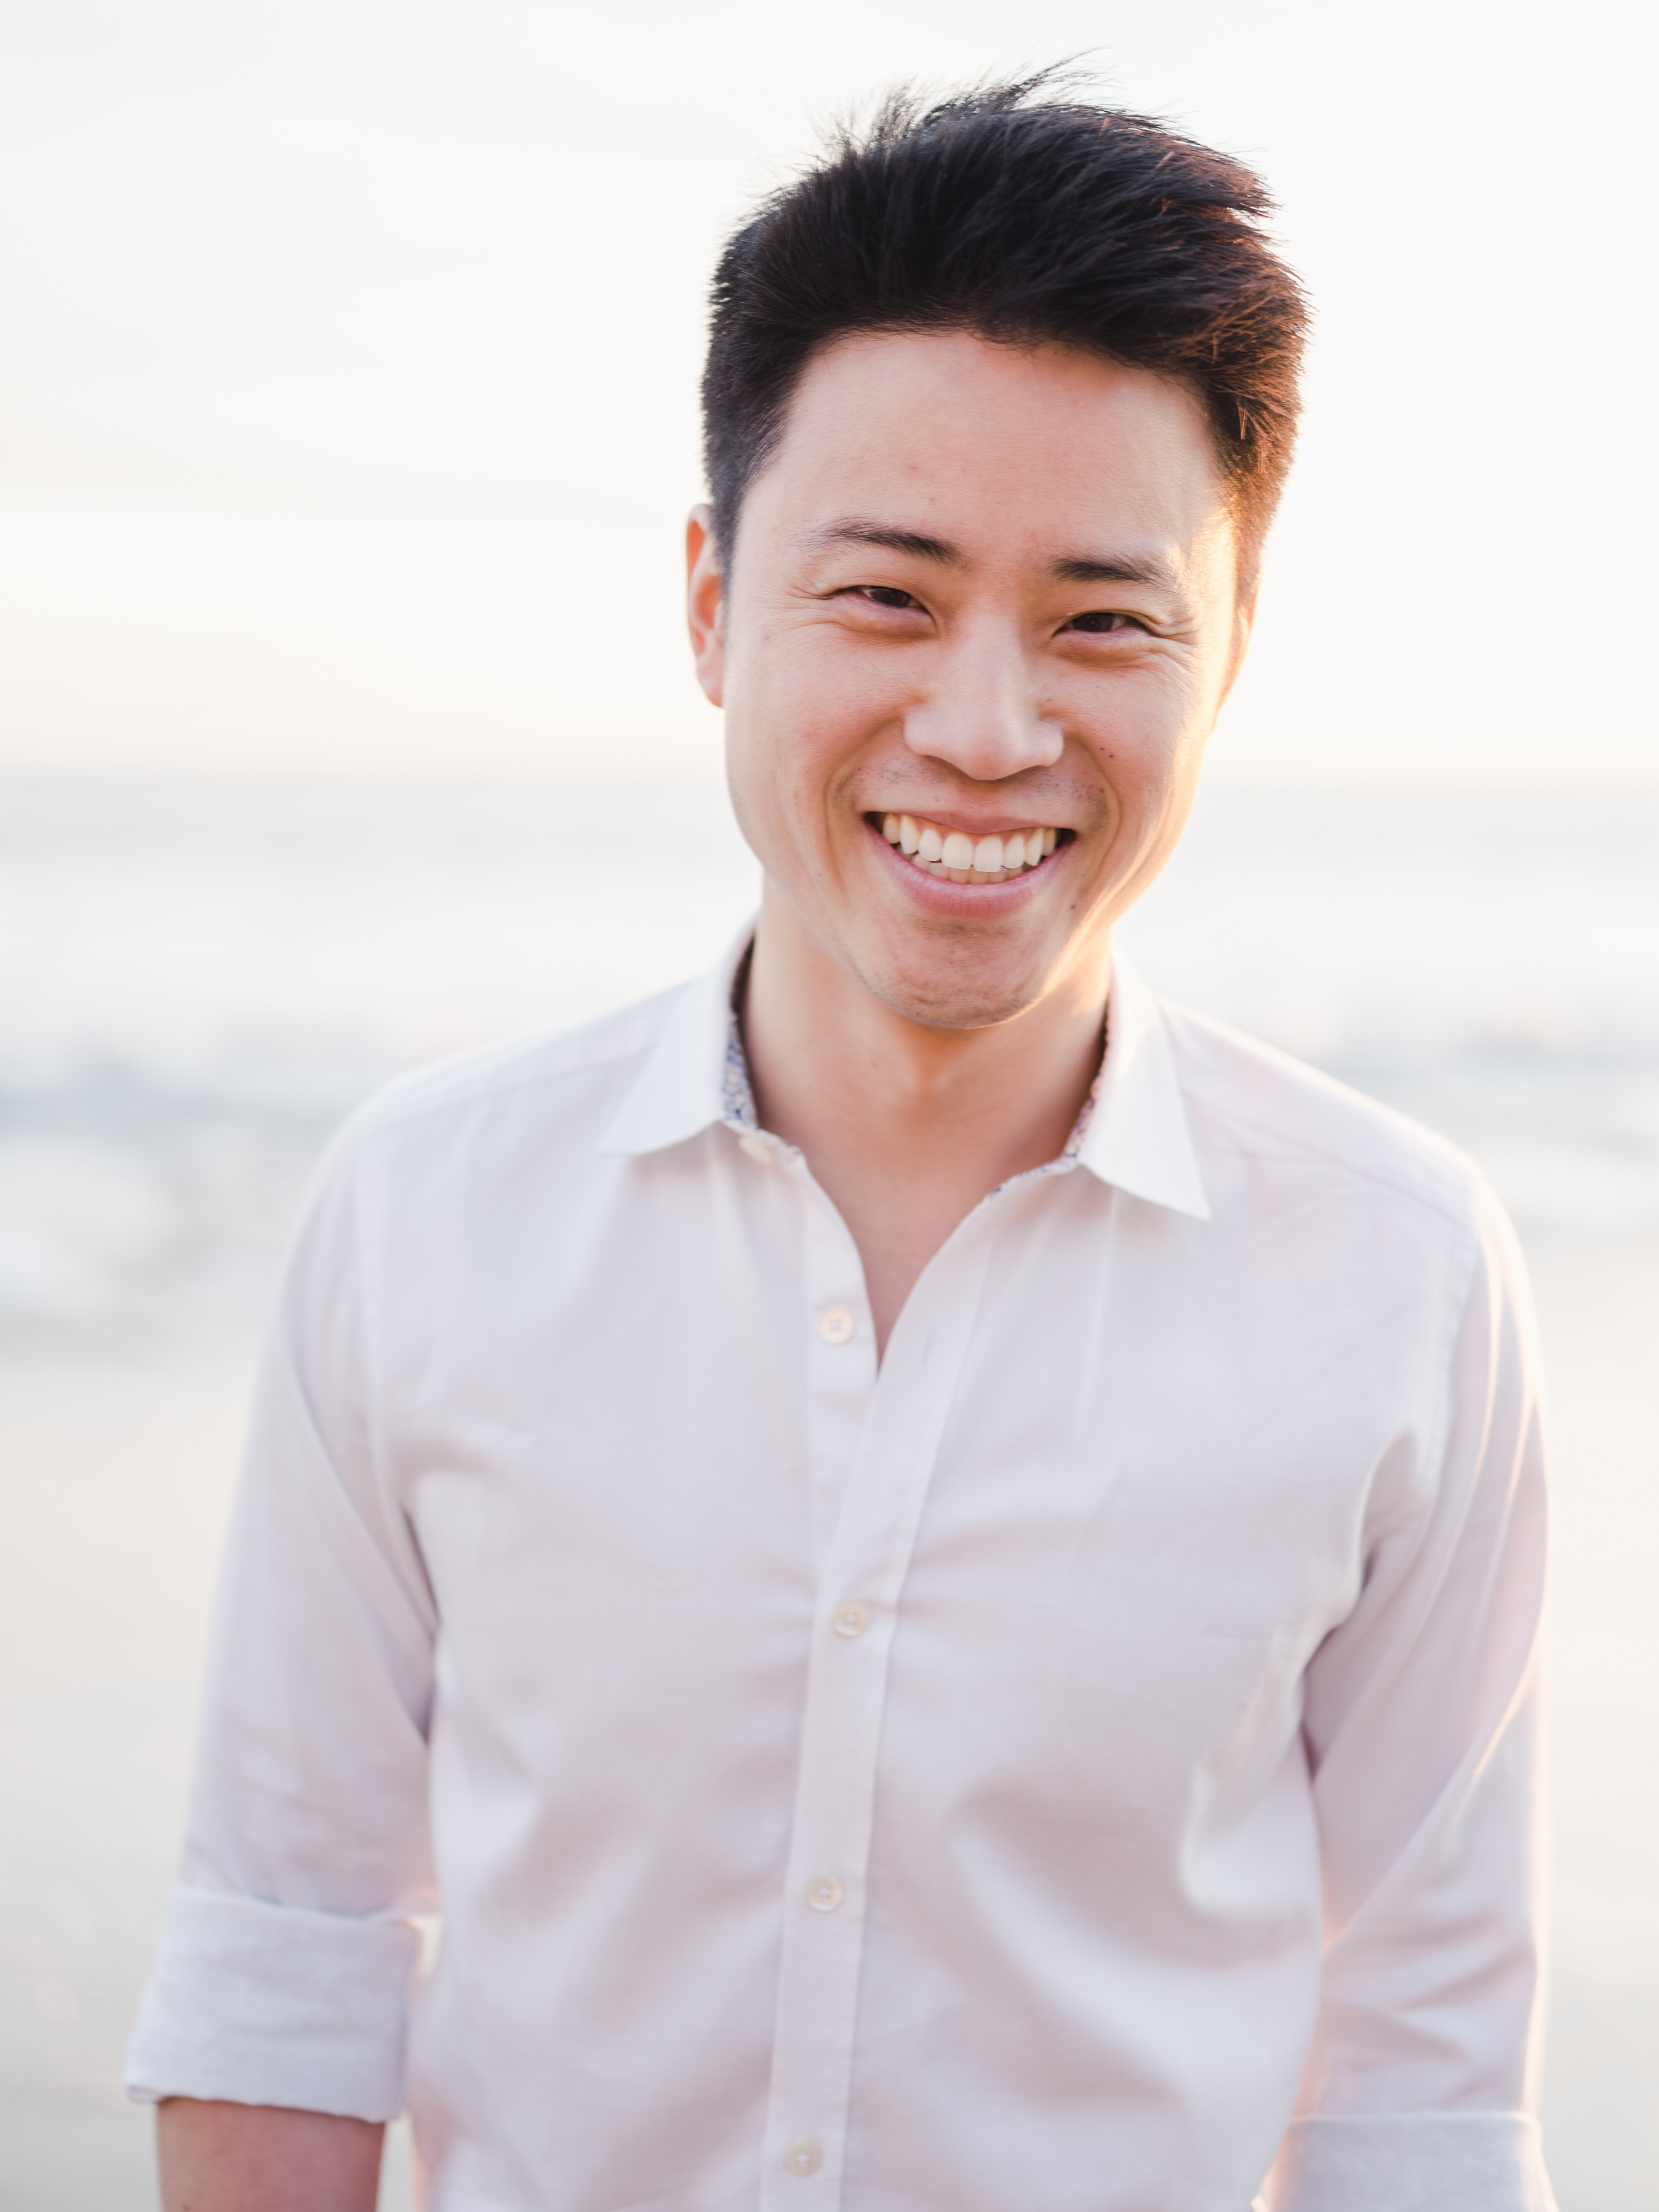 Man in a button down shirt smiling at the camera on the beach